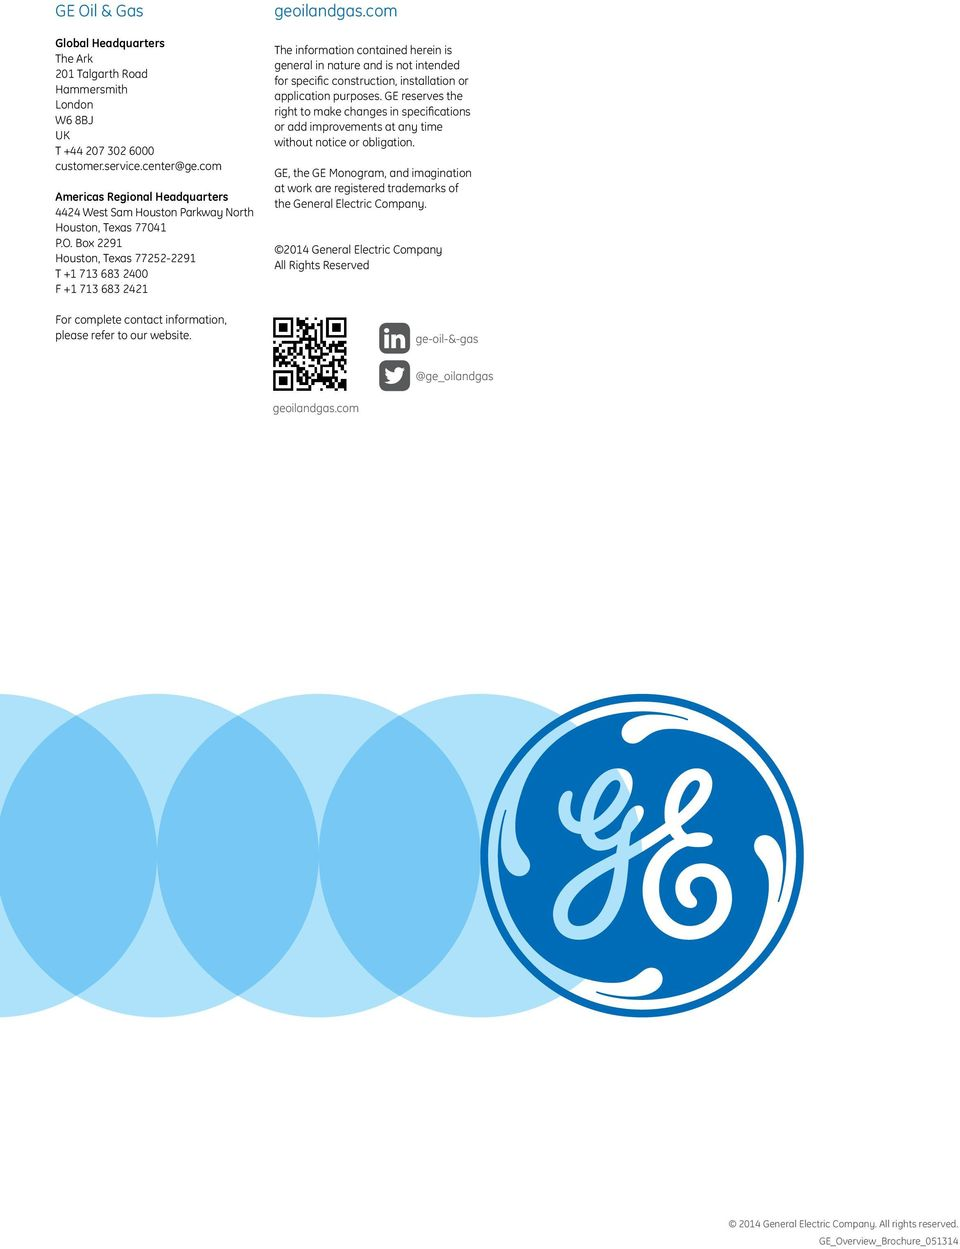 GE Oil & Gas GE Oil & Gas works on the things that matter in